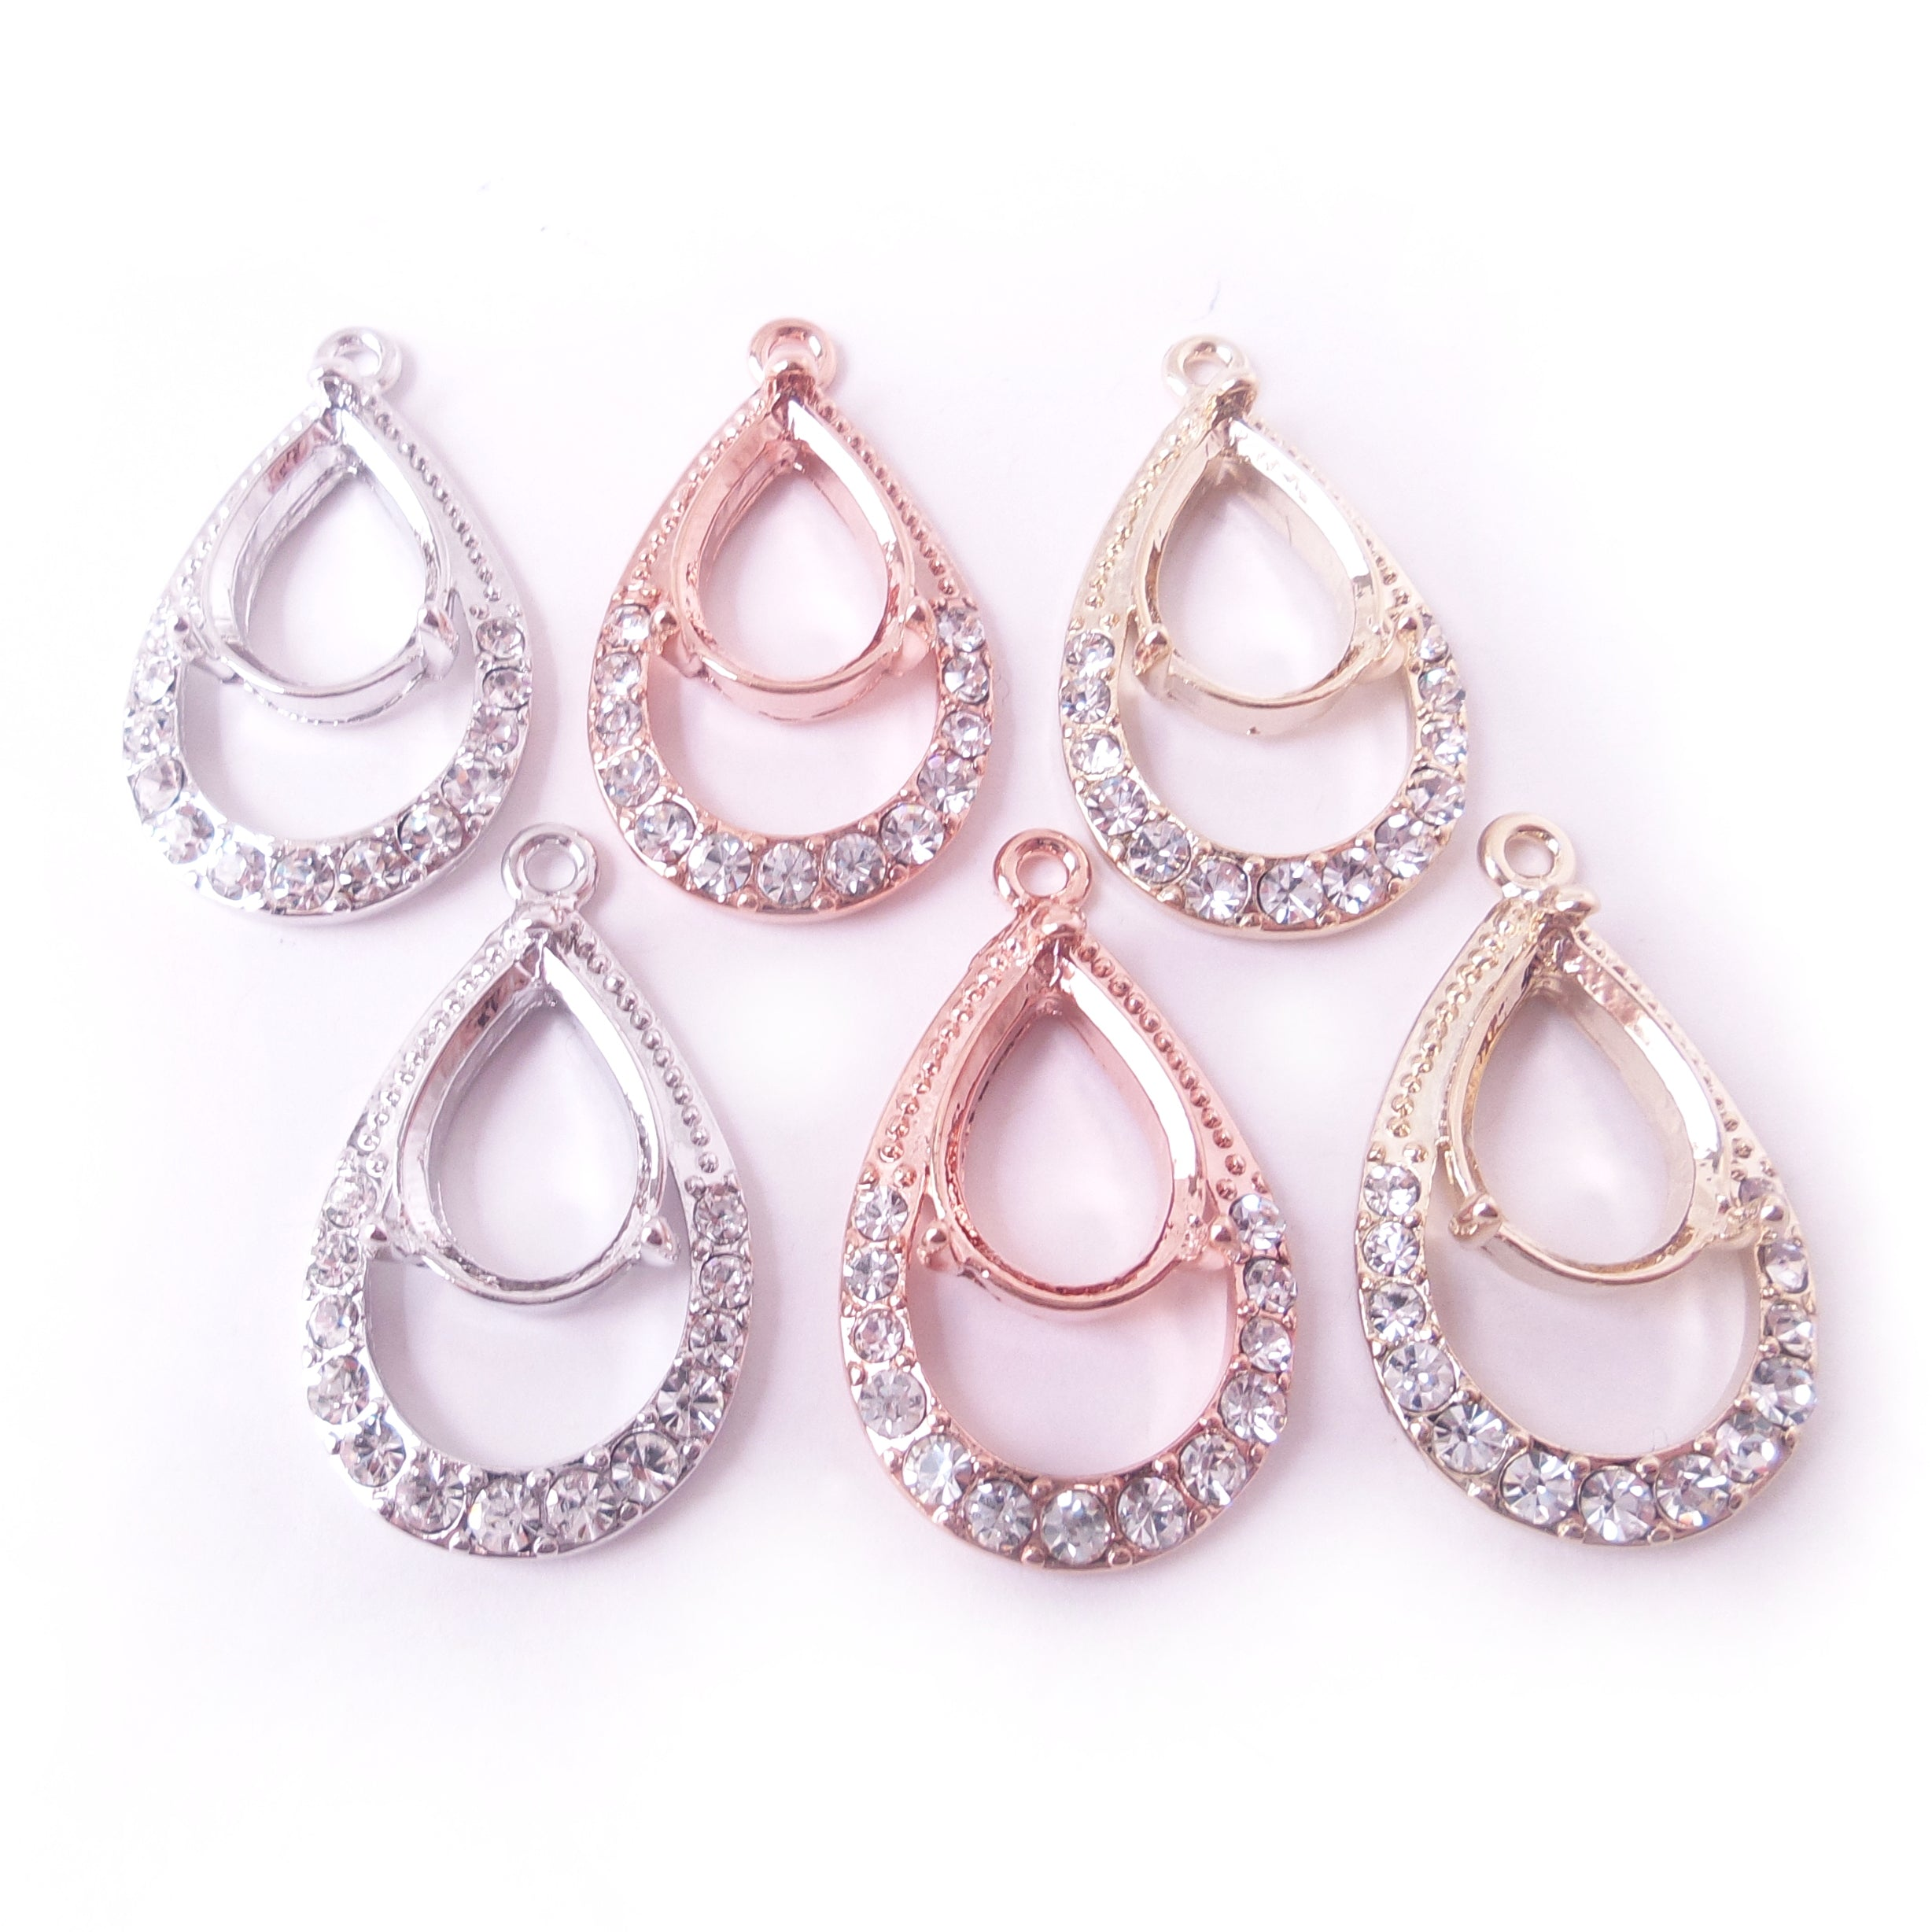 Earring Body Components for 10 x 14mm Pear Rhinestone Setting Finding